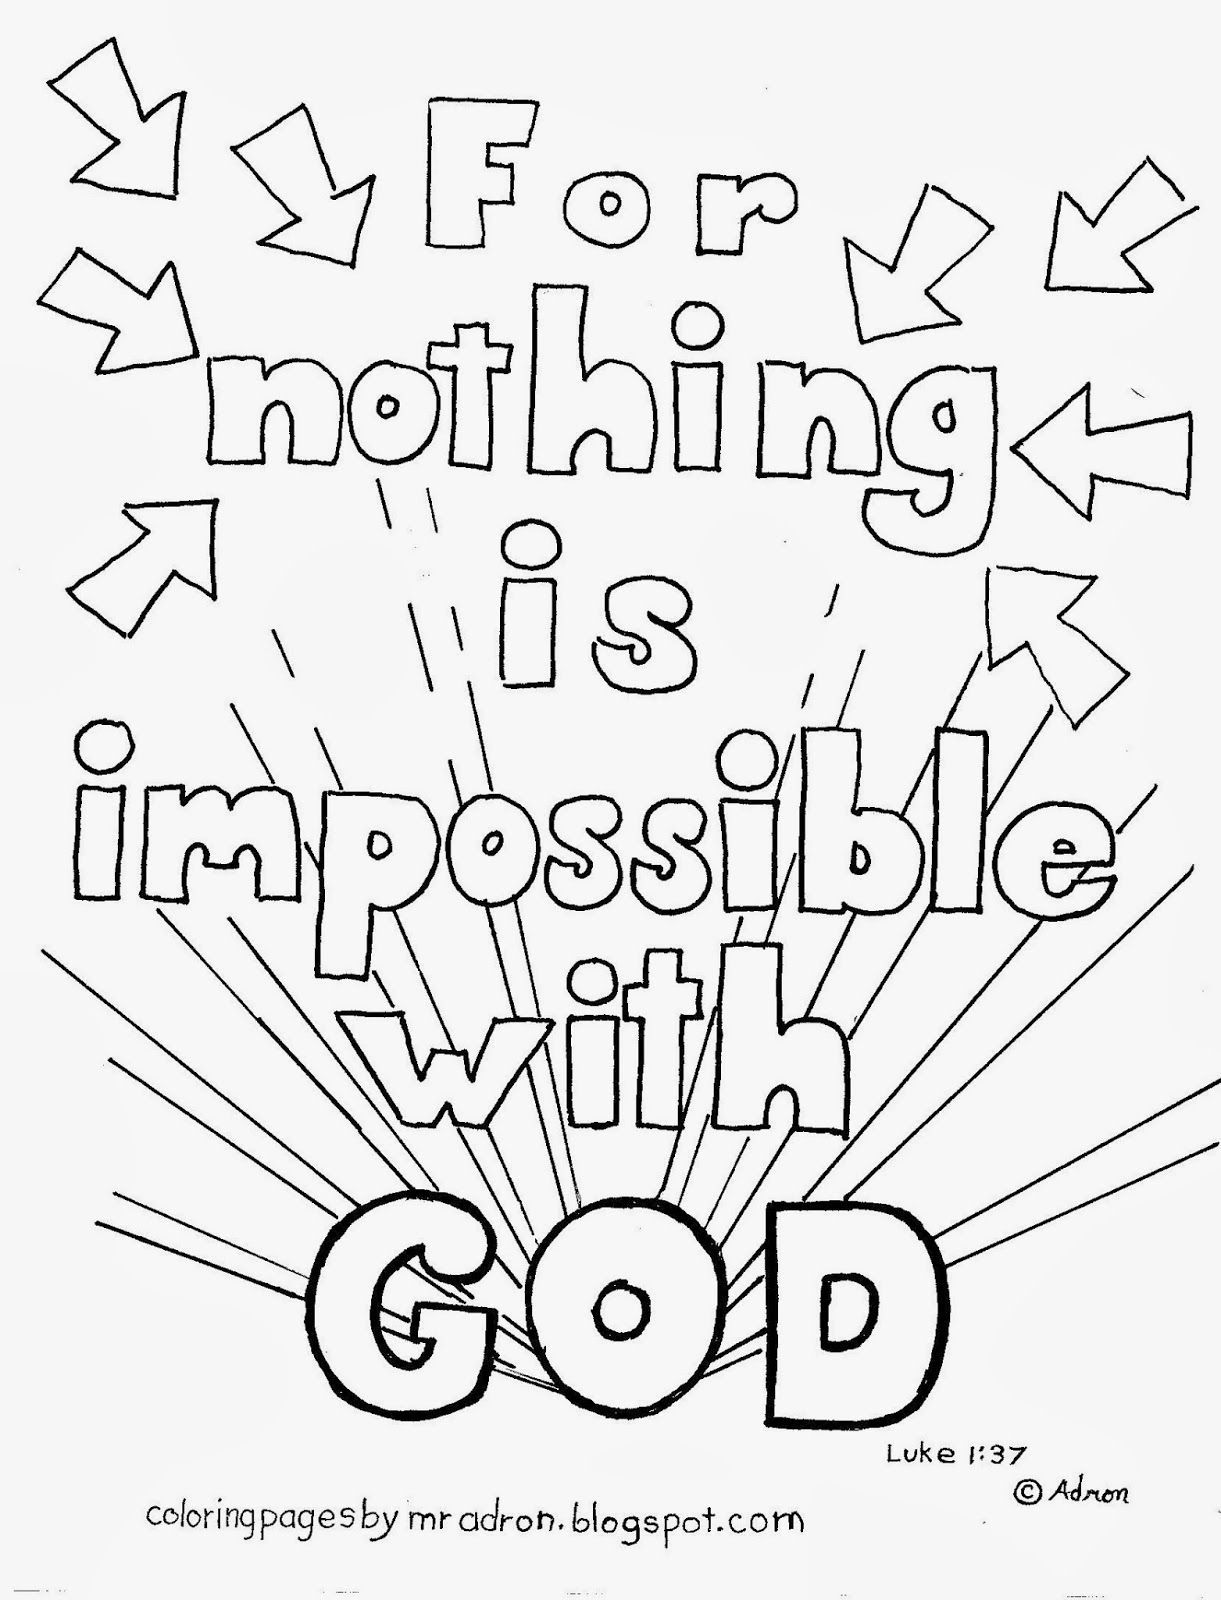 Thanksgiving coloring pages with bible verses - Coloring Pages For Kids By Mr Adron Nothing Is Impossible For God Free